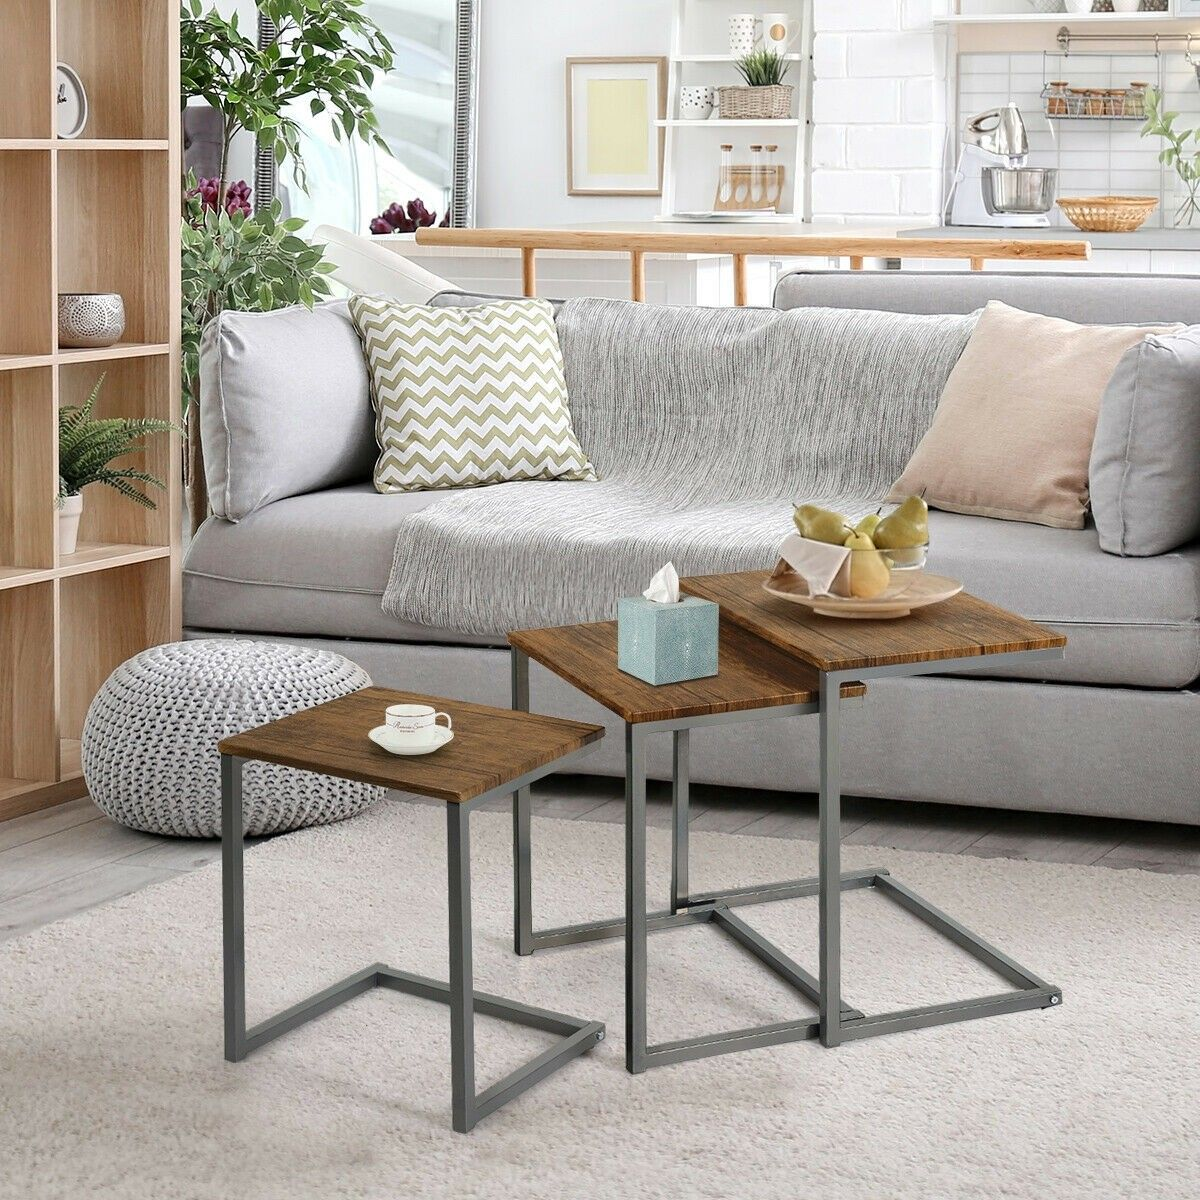 3 Pices Multifunctional Coffee End Table Set 49 95 Free Shipping The Sofa Side Tables Are In Living Room Table Sets Living Room Table Modern Home Furniture